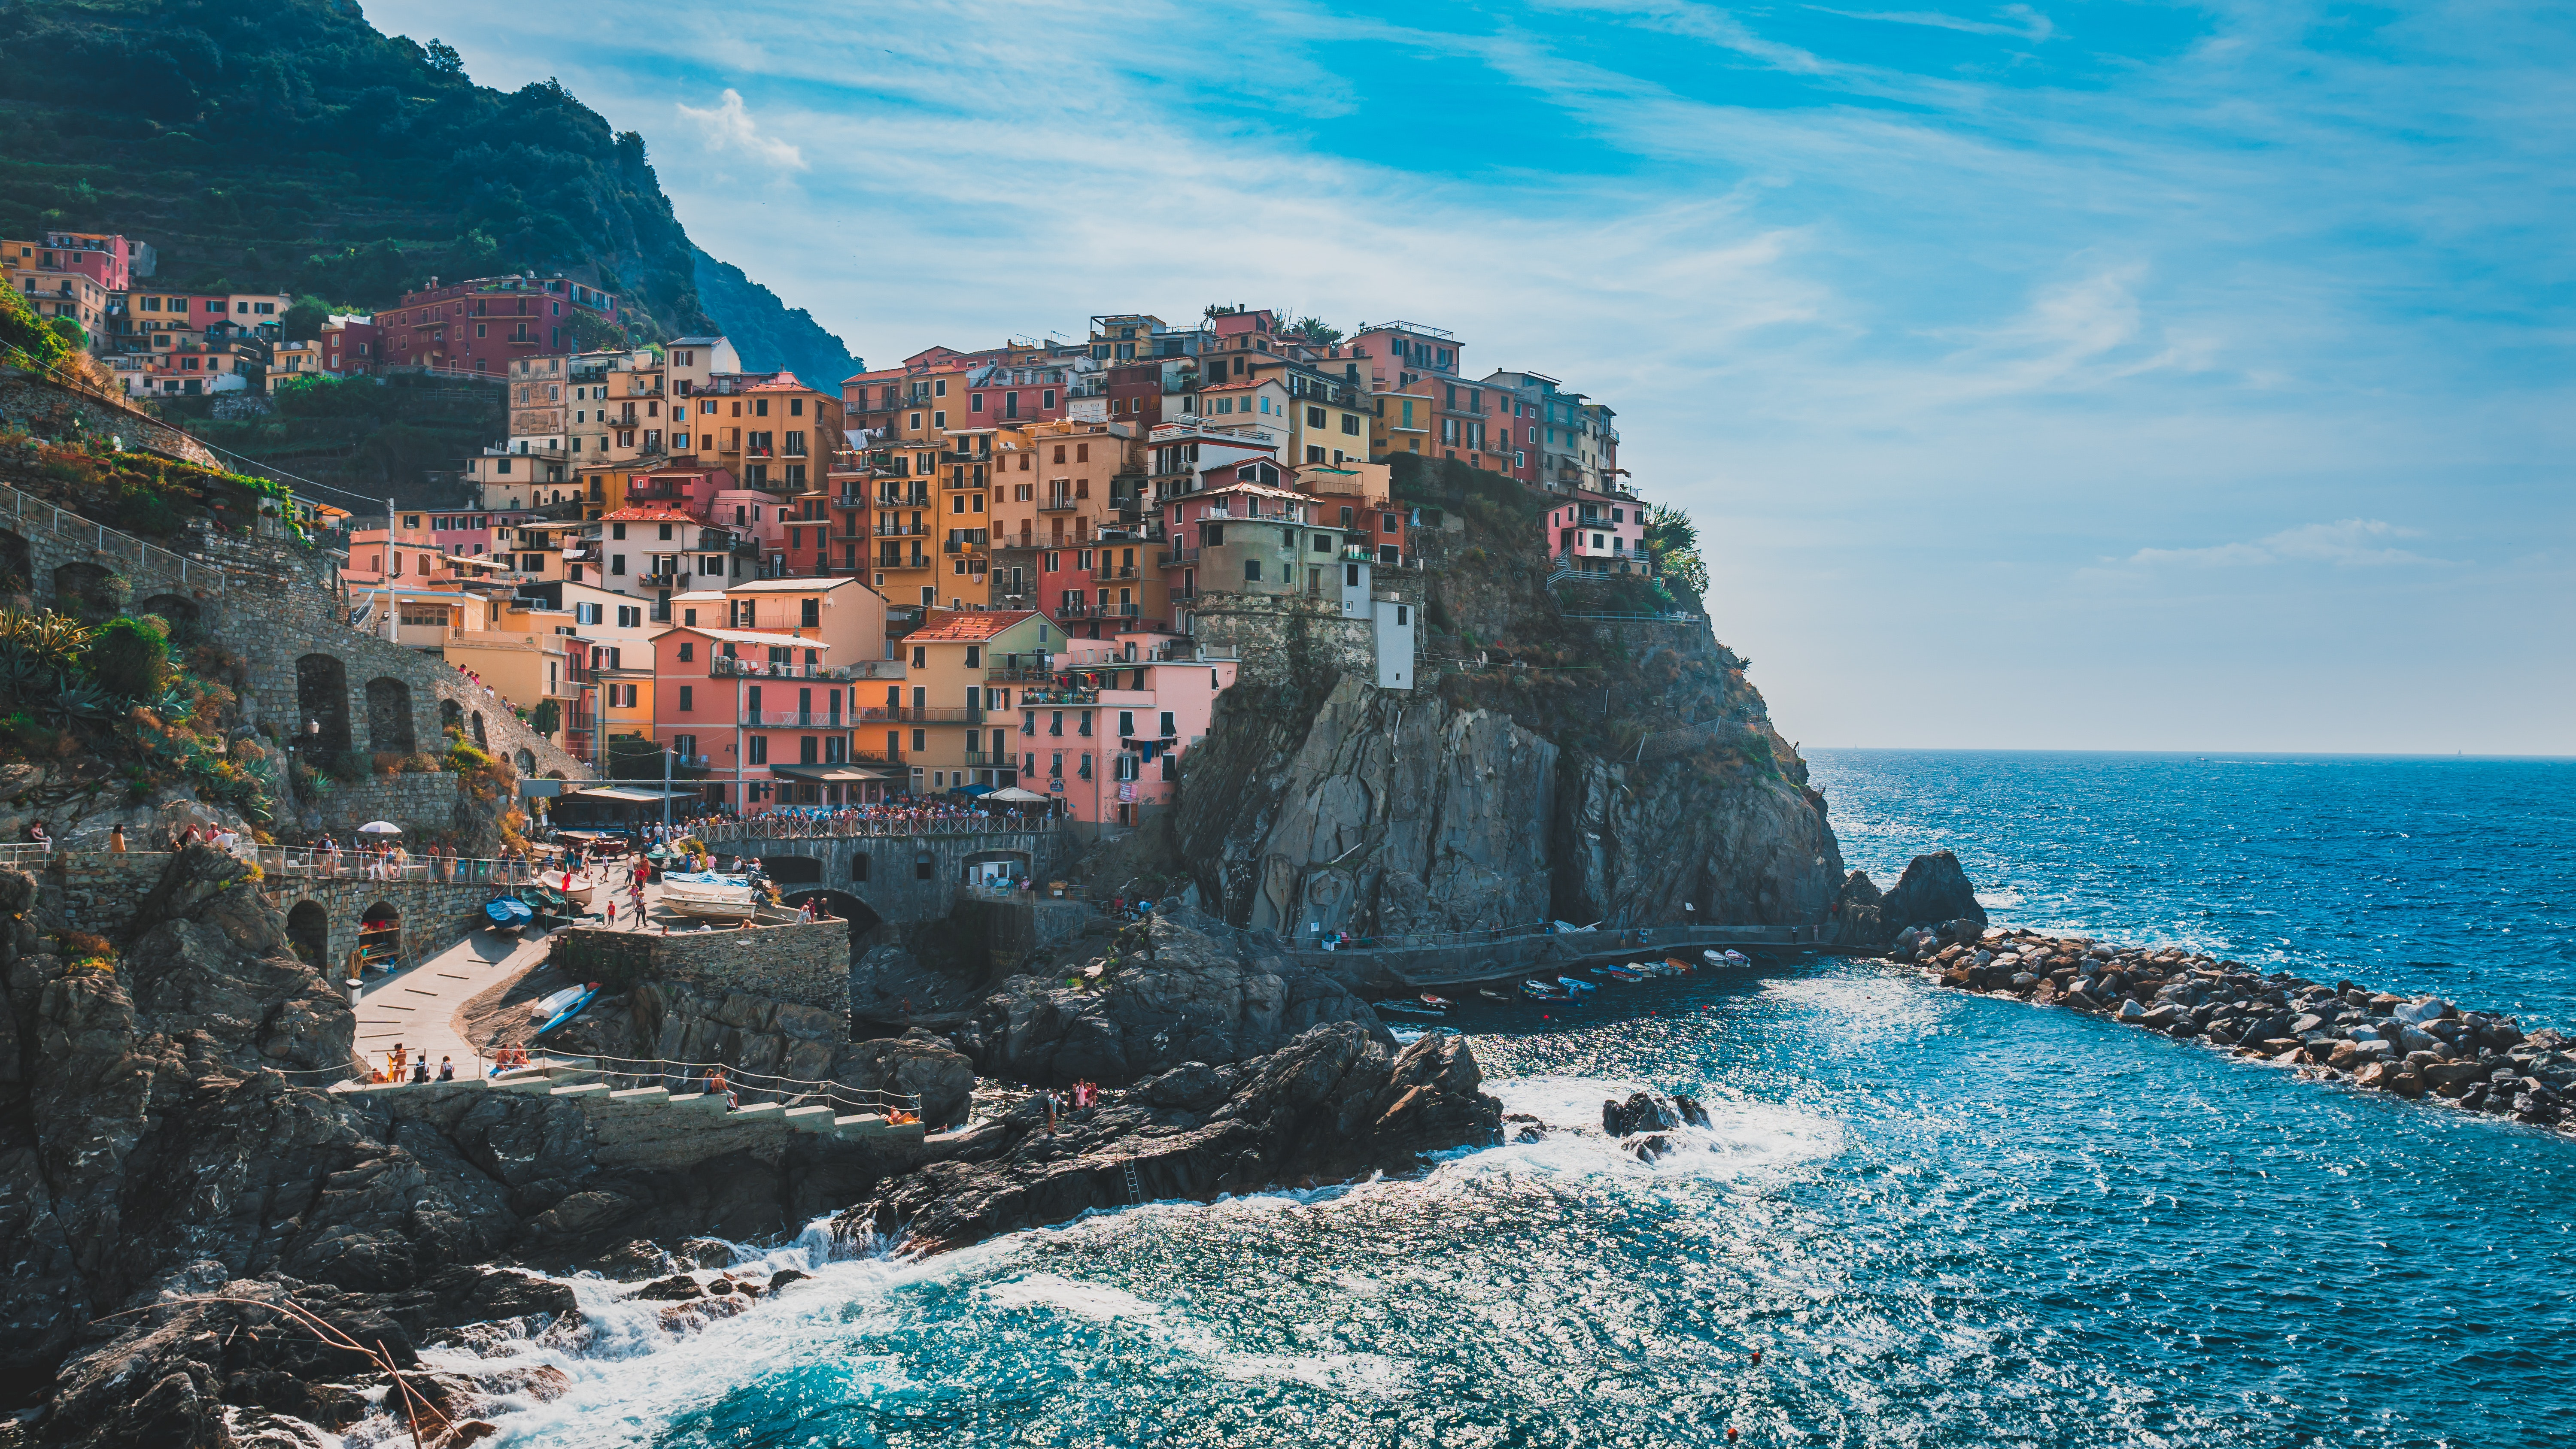 Steer through the Amalfi Coast in Italy, Romantic Things to do in Europe